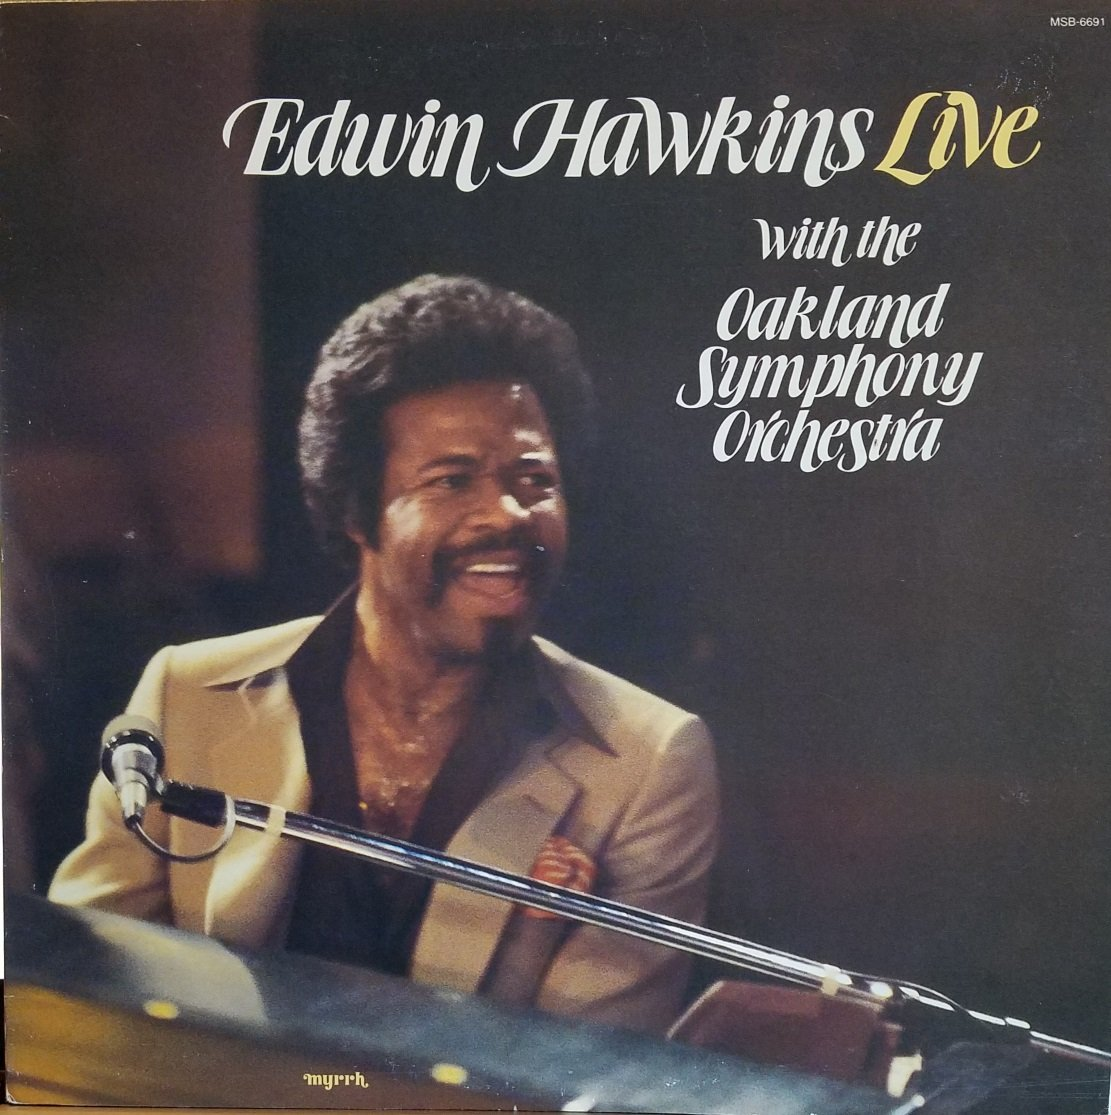 Edwin Hawkins - Edwin Hawkins Live With The Oakland Symphony Orchestra (1981) [FLAC] Download